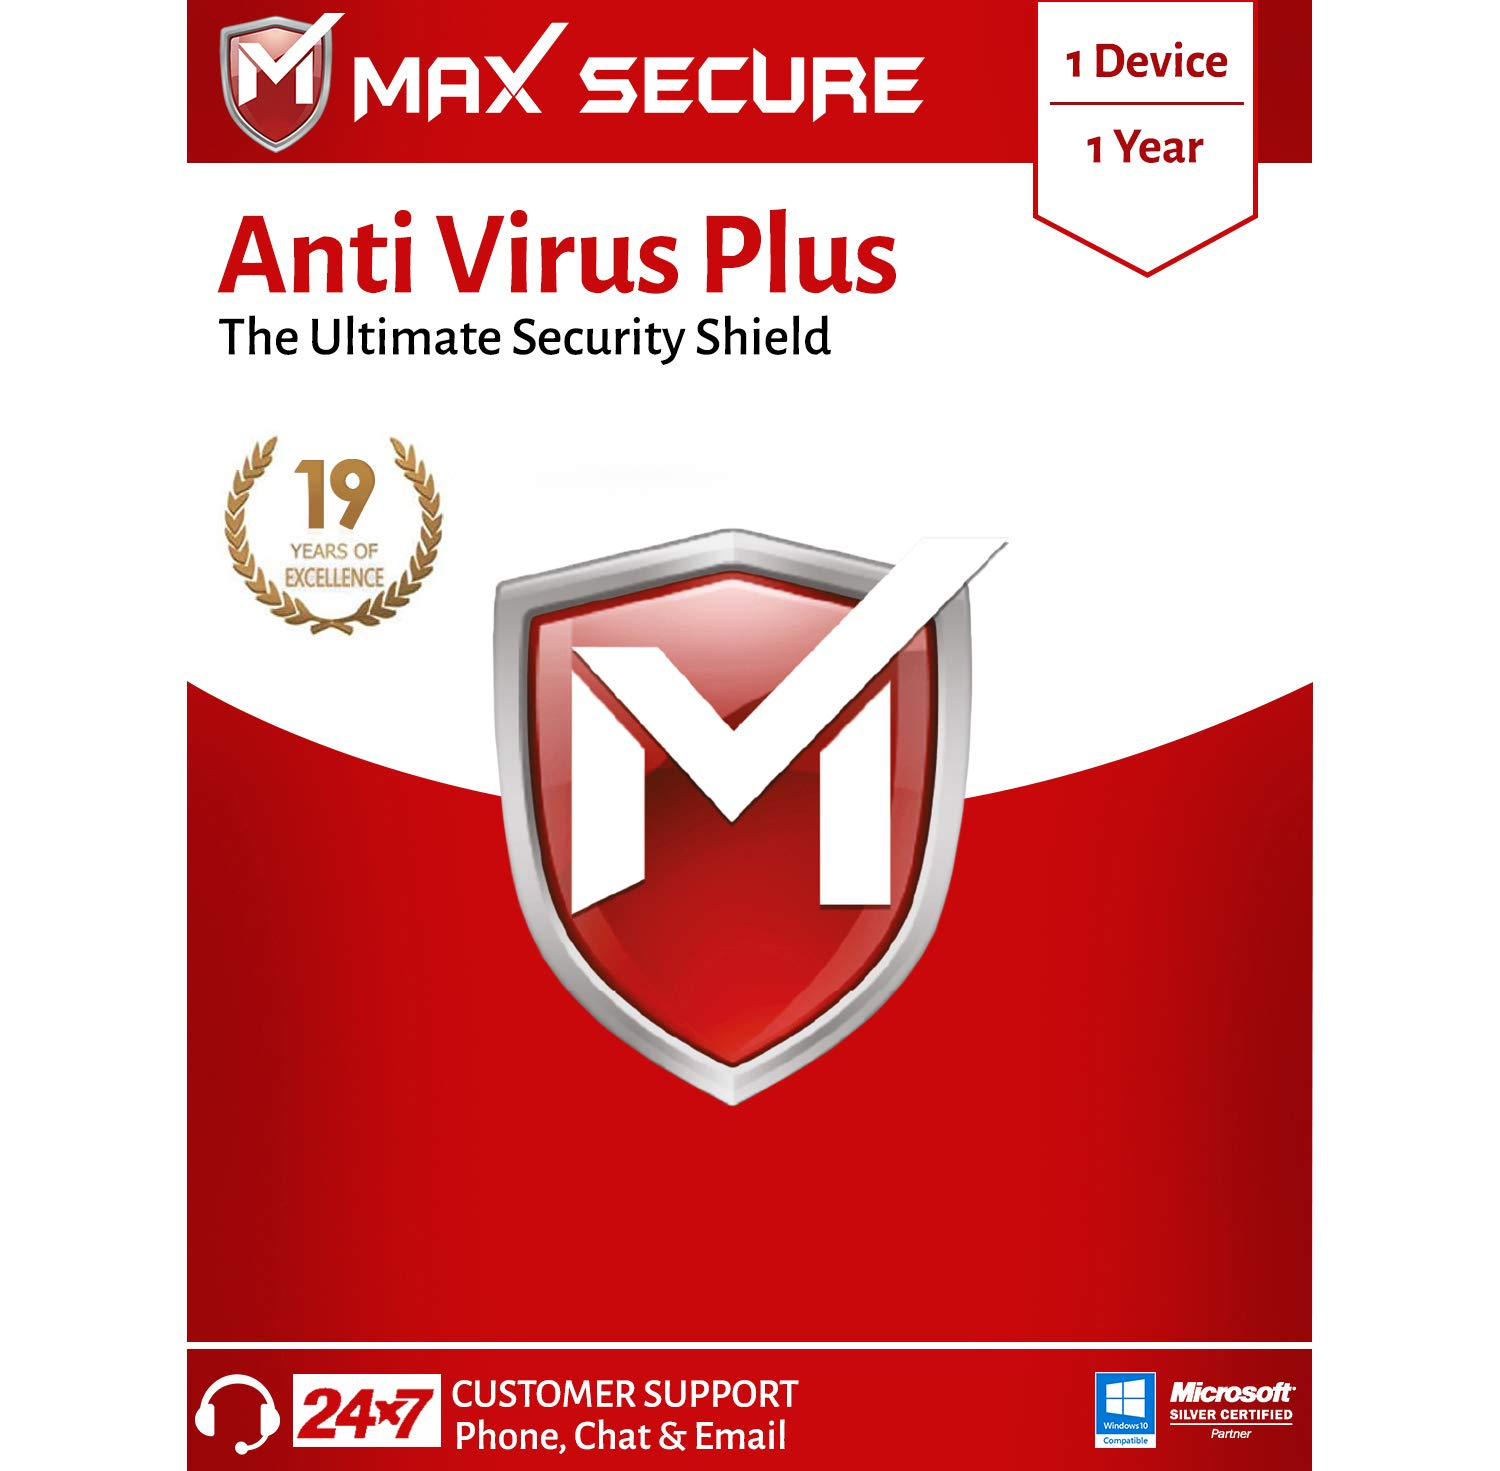 Max Secure Anti-Virus Plus